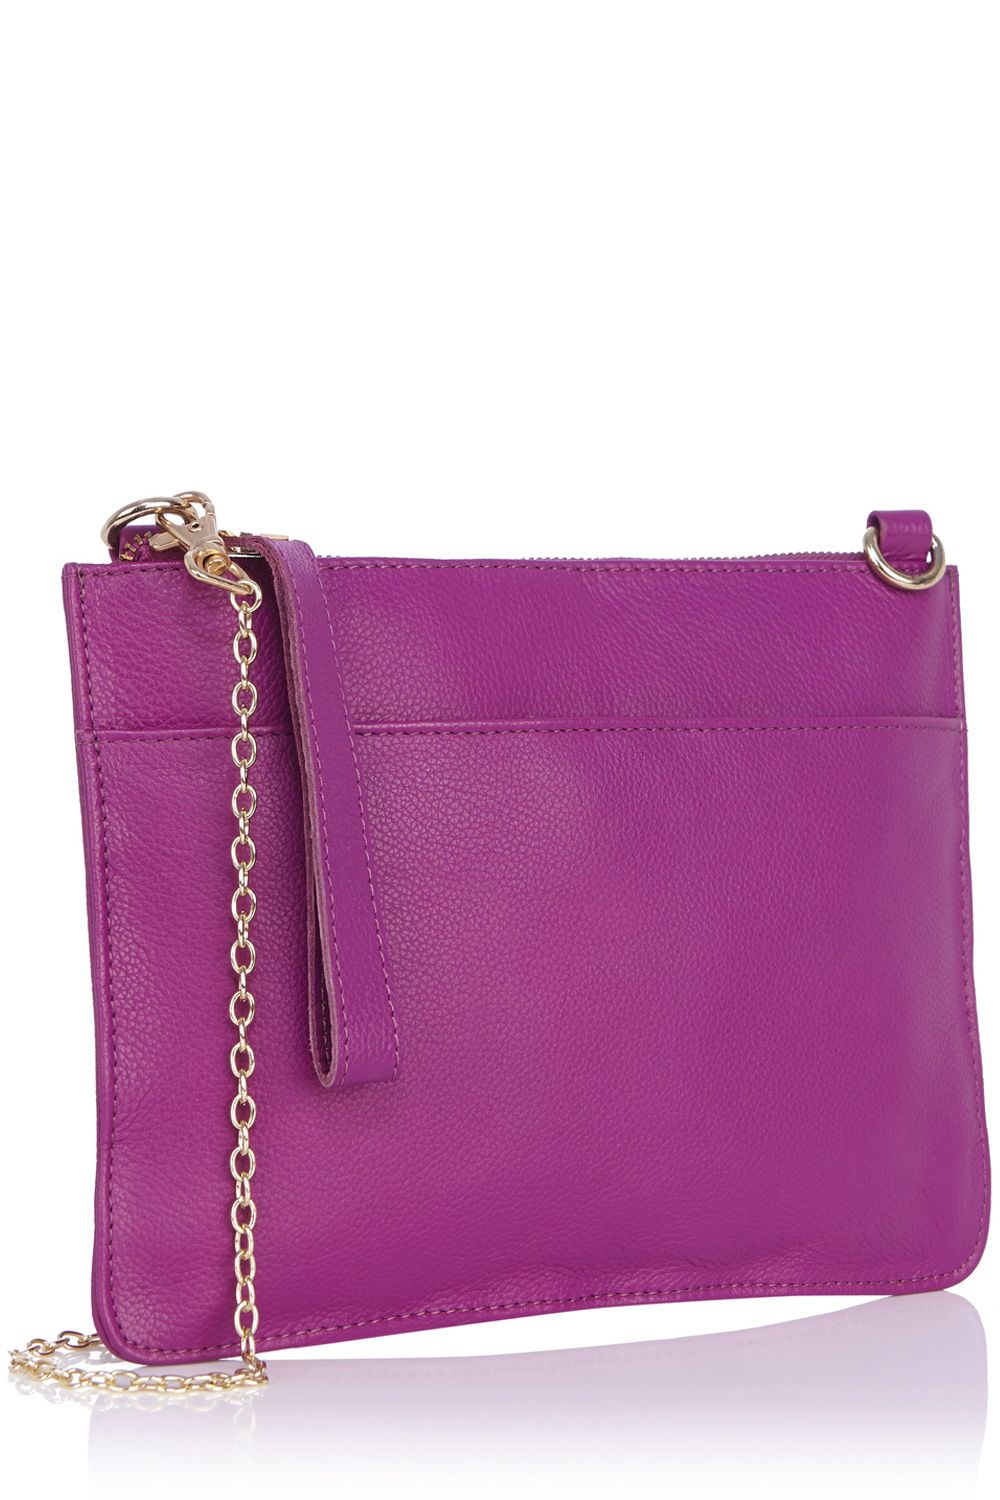 Stephanie leather clutch bag